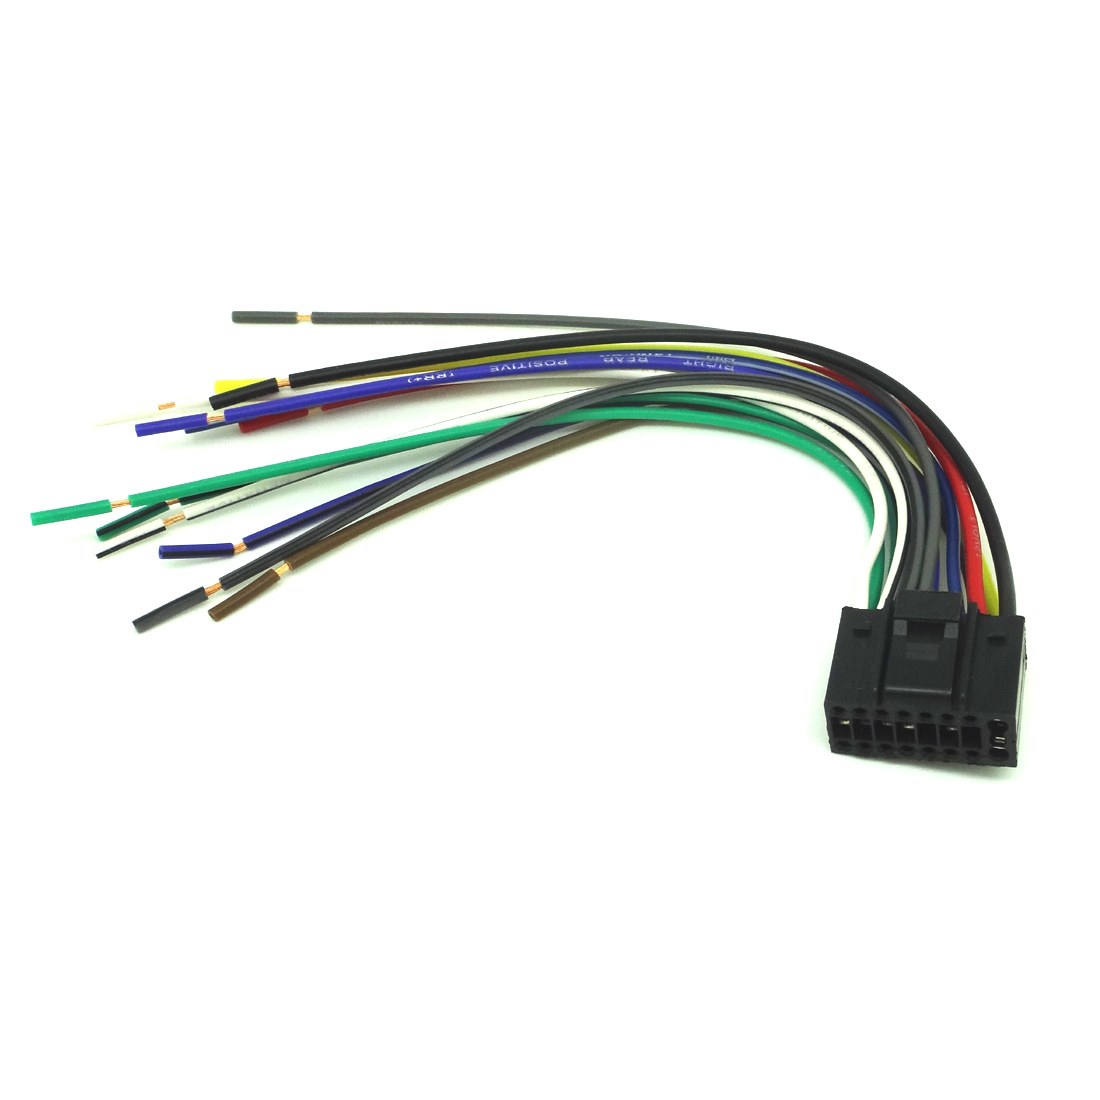 player 16 pin RADIO CAR AUDIO STEREO WIRE HARNESS for KENWOOD KDC MP332 KDC MP335 KDC player 16 pin radio car audio stereo wire harness for kenwood kdc kenwood kdc-mp332 wiring harness at cos-gaming.co